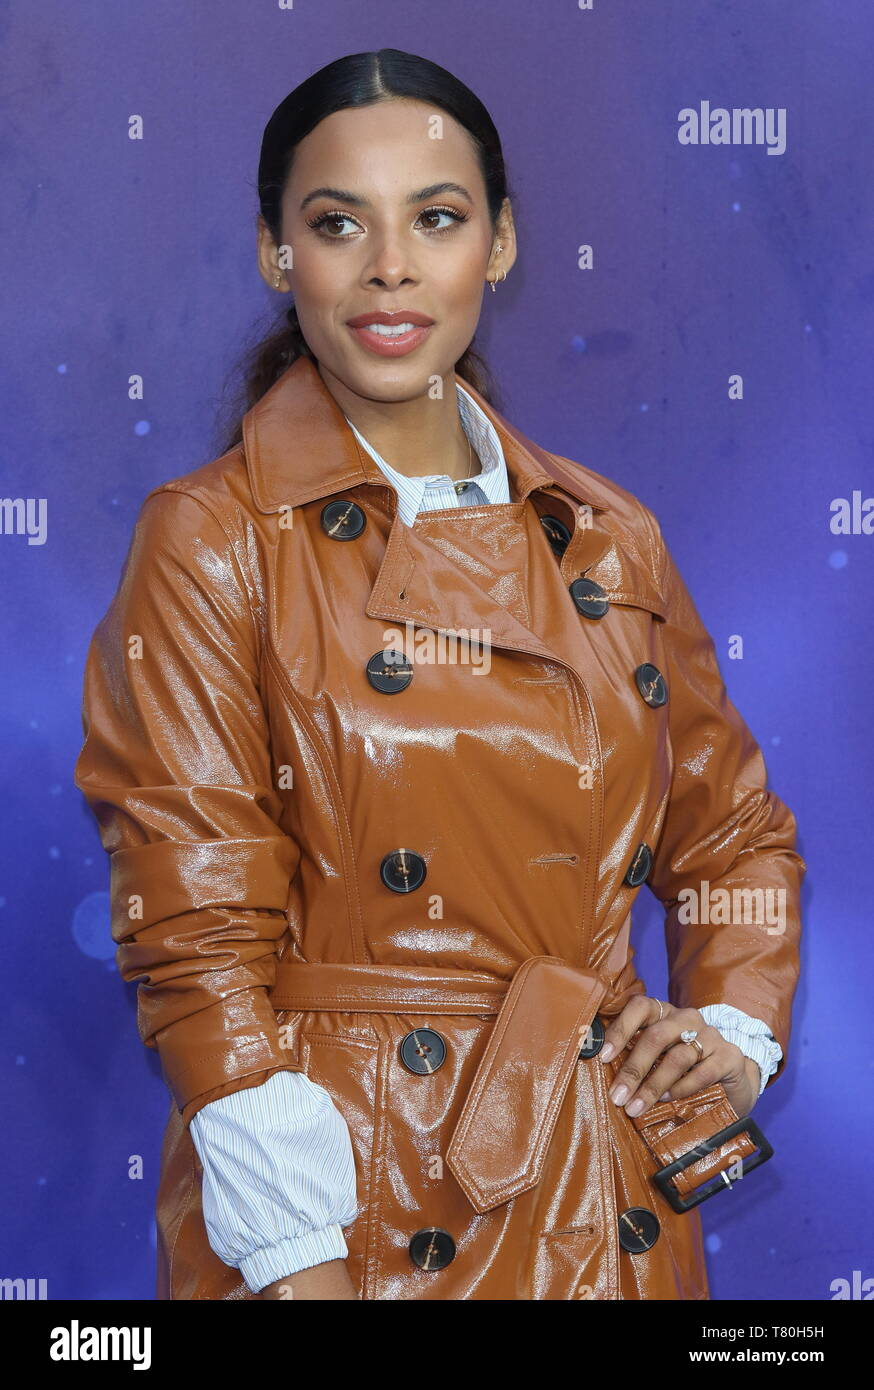 Rochelle Humes attends the Aladdin European Gala Screening at the Odeon Luxe Leicester Square - Stock Image